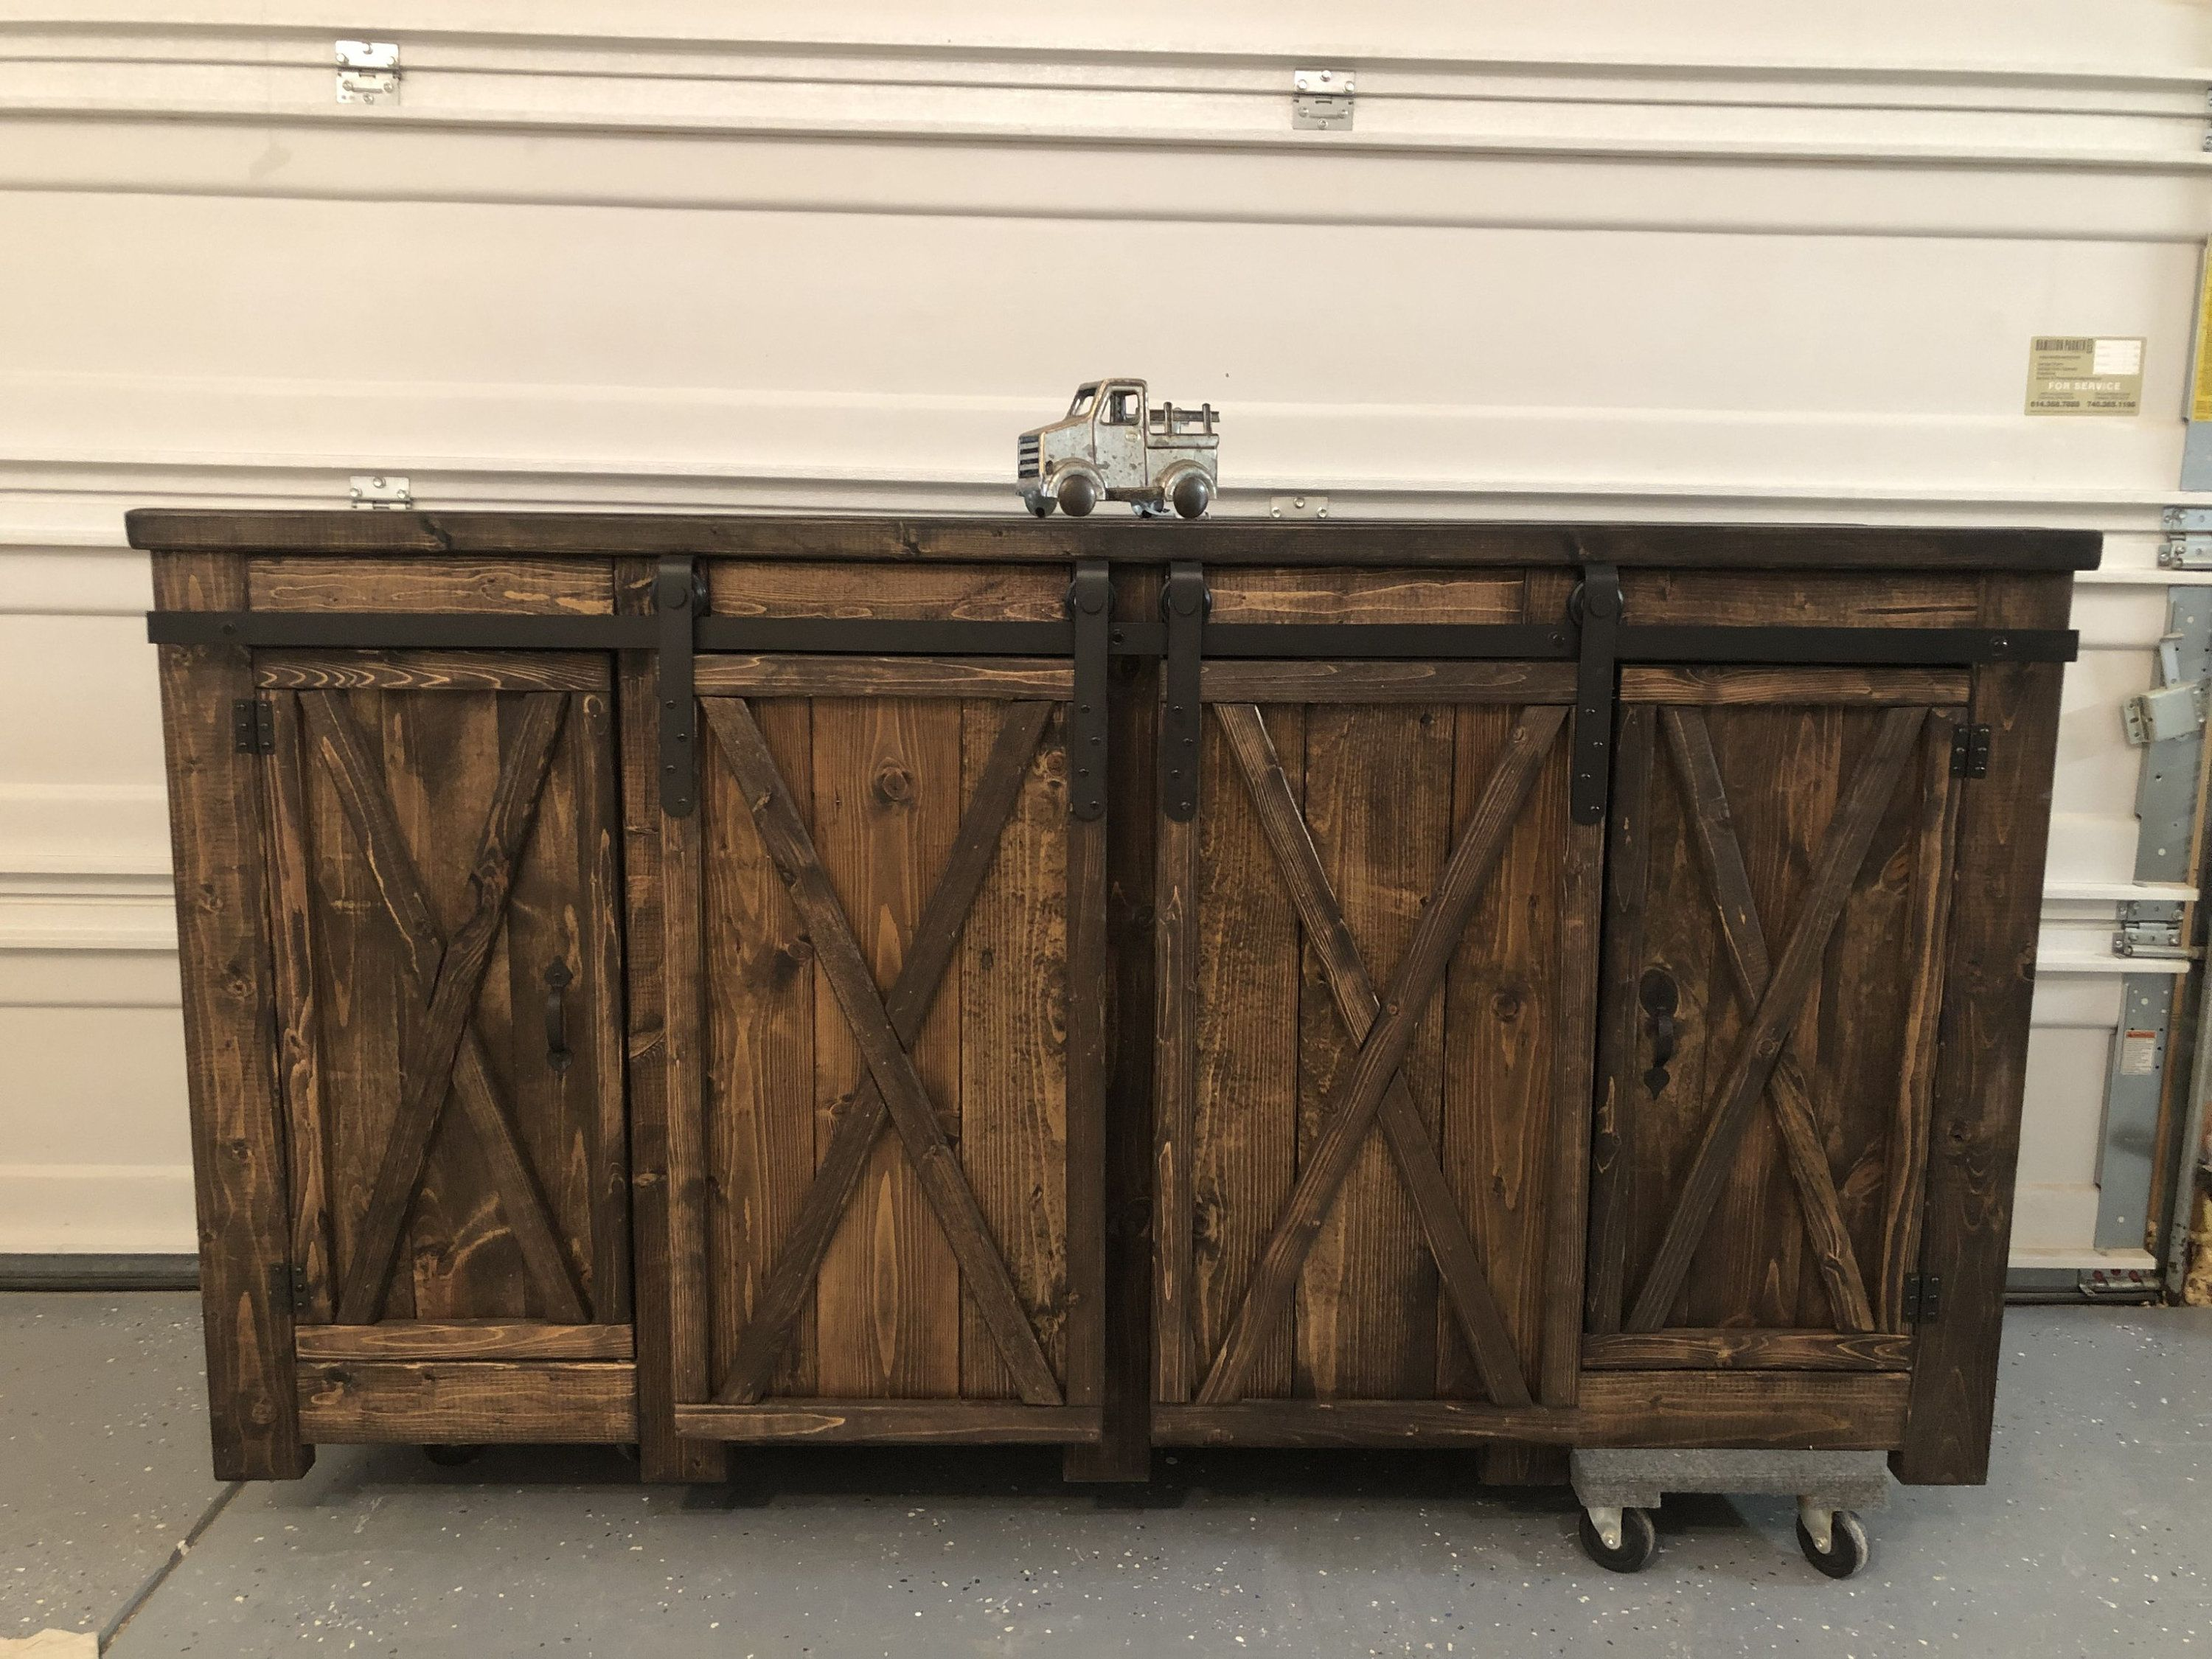 Farmhouse Rustic Style Buffet With Barn Doors Sideboard Farmhouse Style Console With Barn Door Slider And